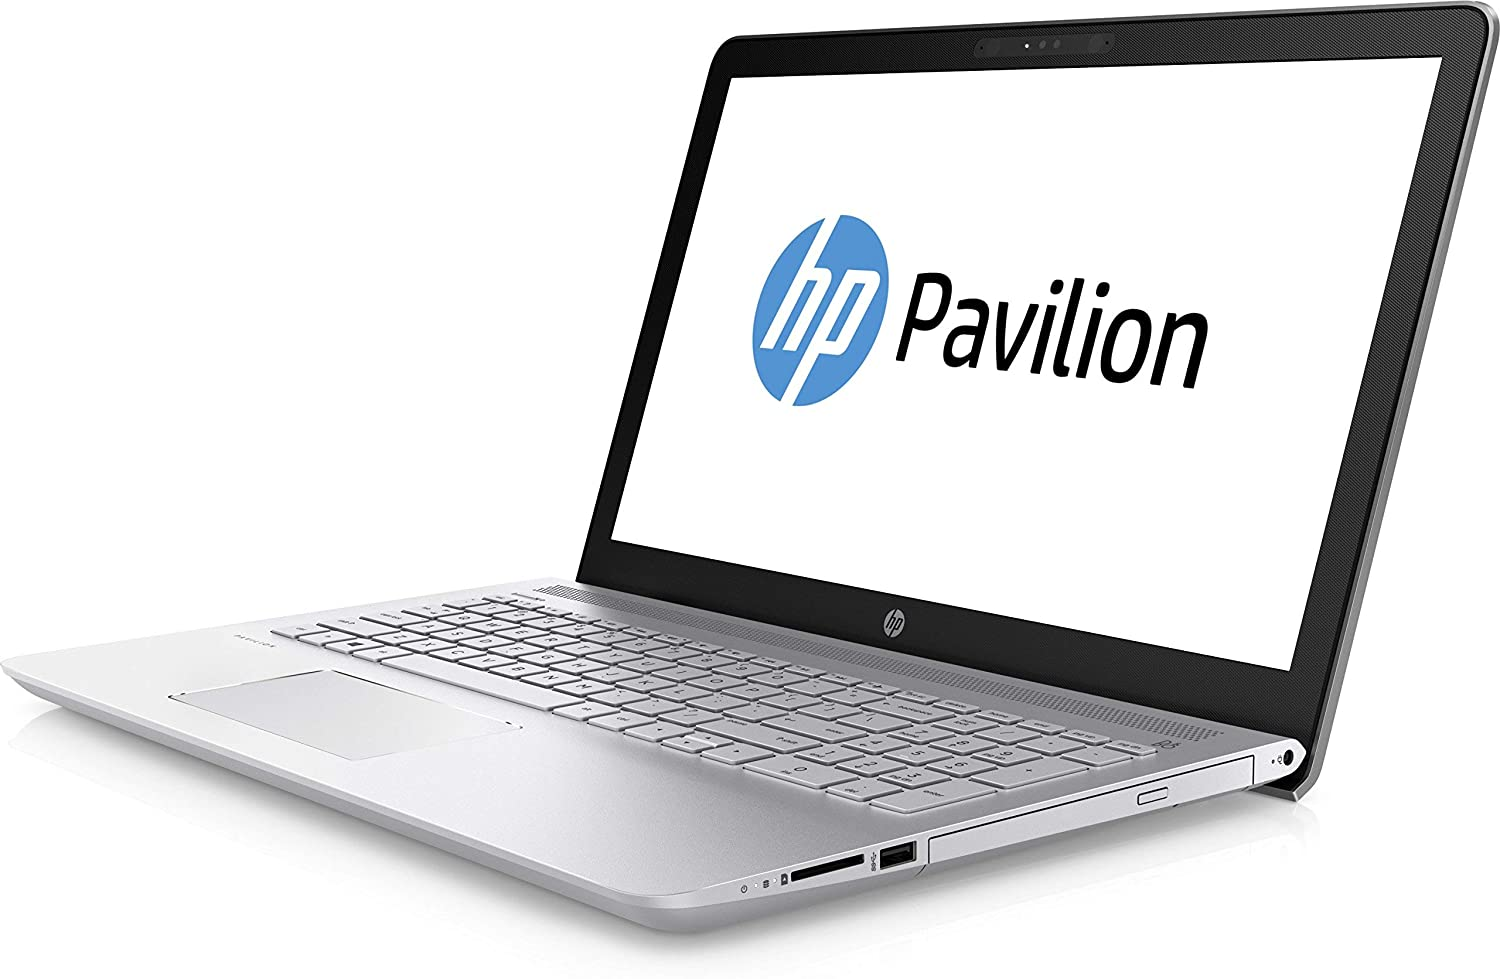 HP Pavilion Intel Core i5 8th Gen 15 6-inch FHD Thin and Light Laptop  (8GB/1TB HDD/Win 10 Home/2GB Graphics/Silver/2 02 kg), cc129TX